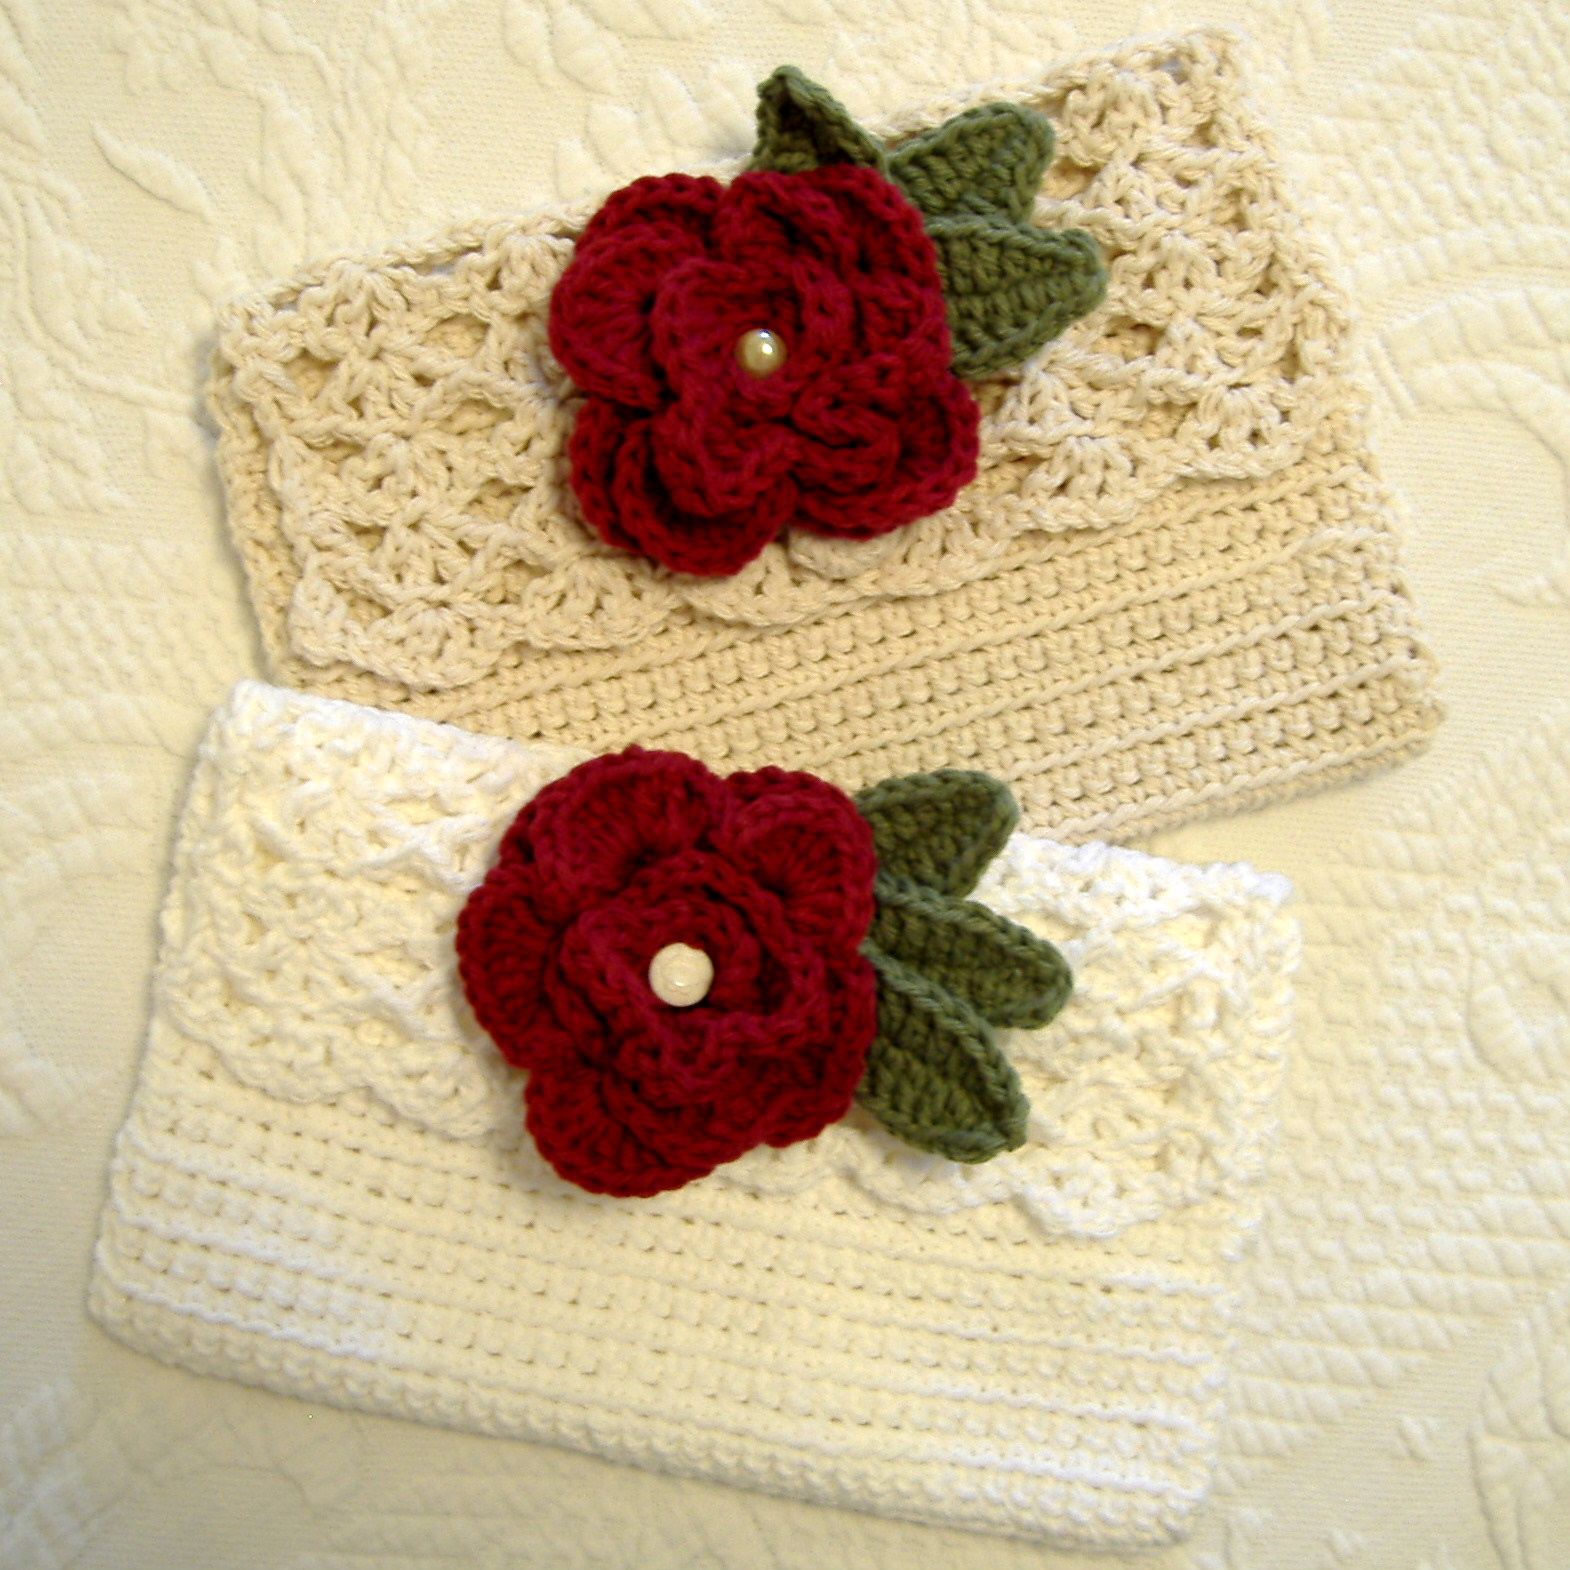 Crochet Pouch : CROCHET PATTERNS FOR A PURSE ? Crochet Projects